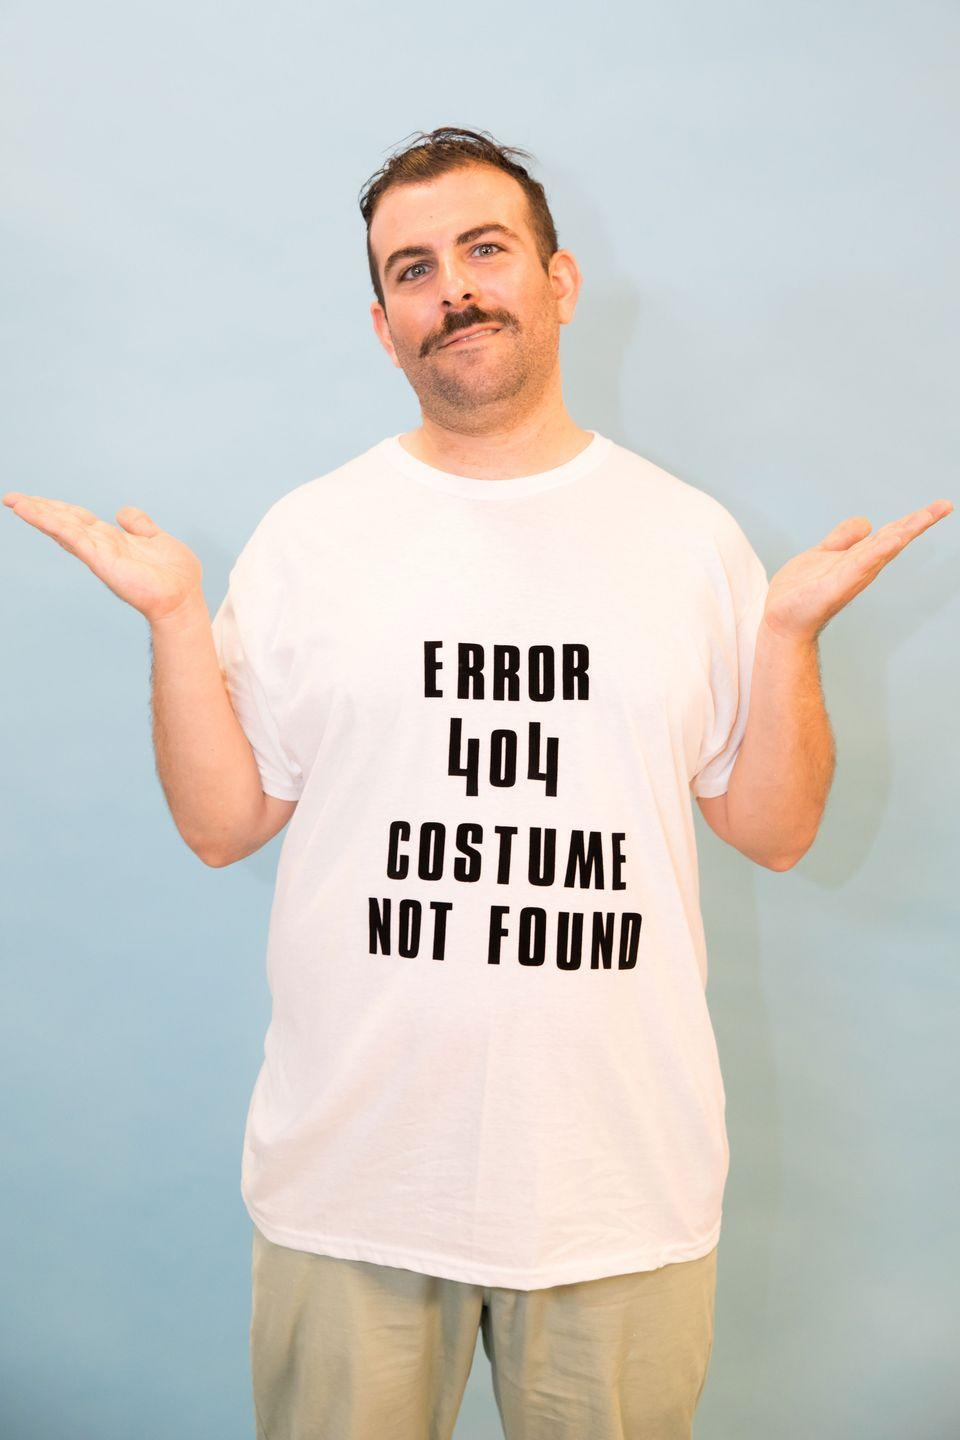 """<p>You can literally make this costume a minute before you walk out the door. A+ for hilarity, but maybe not effort.</p><p><a class=""""link rapid-noclick-resp"""" href=""""https://www.amazon.com/Goodthreads-Short-Sleeve-V-Neck-T-Shirt-XX-Large/dp/B06XW9KPZH/?tag=syn-yahoo-20&ascsubtag=%5Bartid%7C10055.g.2750%5Bsrc%7Cyahoo-us"""" rel=""""nofollow noopener"""" target=""""_blank"""" data-ylk=""""slk:SHOP WHITE SHIRTS"""">SHOP WHITE SHIRTS</a> </p>"""